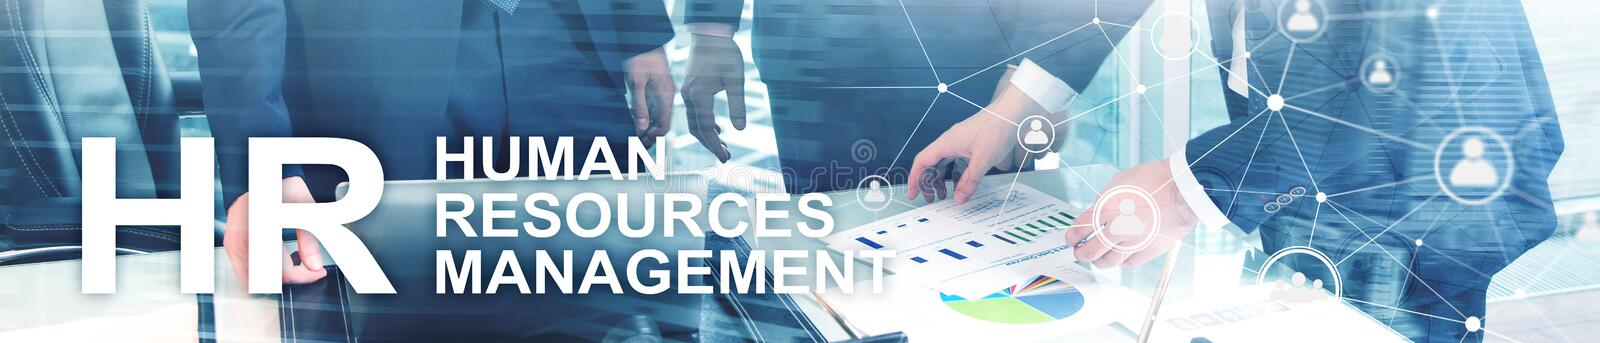 Human resource management, HR, Team Building and recruitment concept on blurred background. Website header banner royalty free stock photo